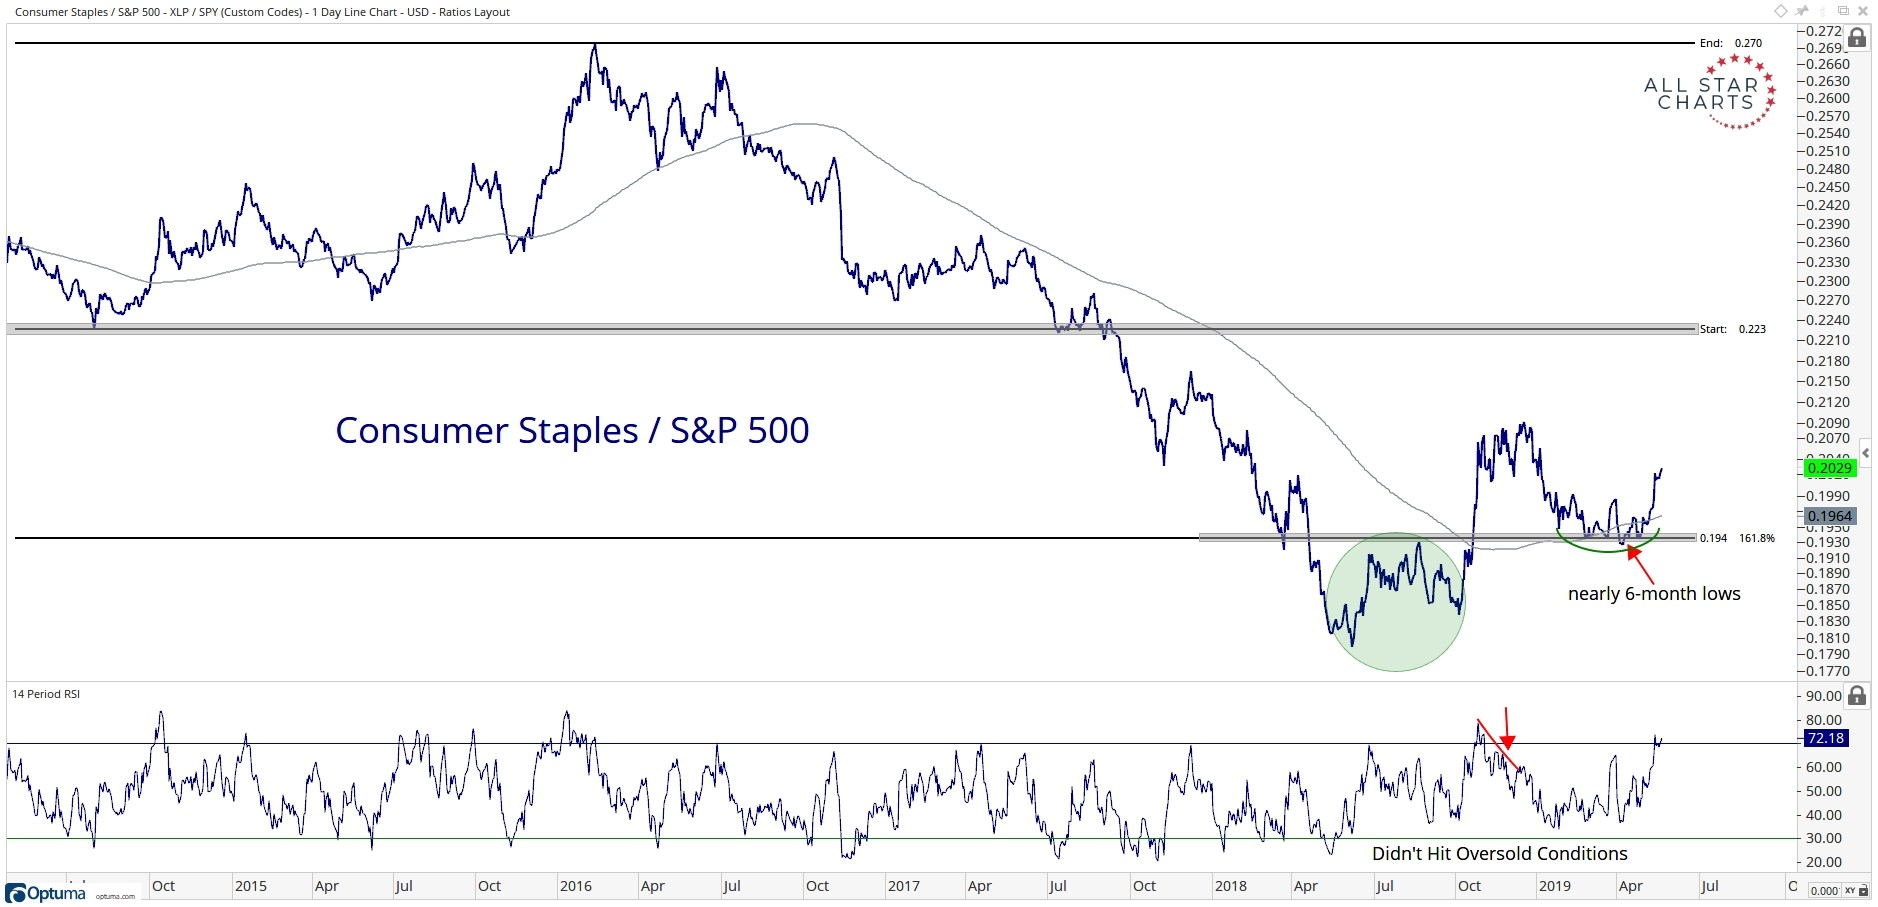 Five-year history of the performance of the Consumer Staples Select Sector SPDR Fund (NYSEArca: XLP) relative to the SPDR S&P 500 ETF (NYSEArca: SPY).